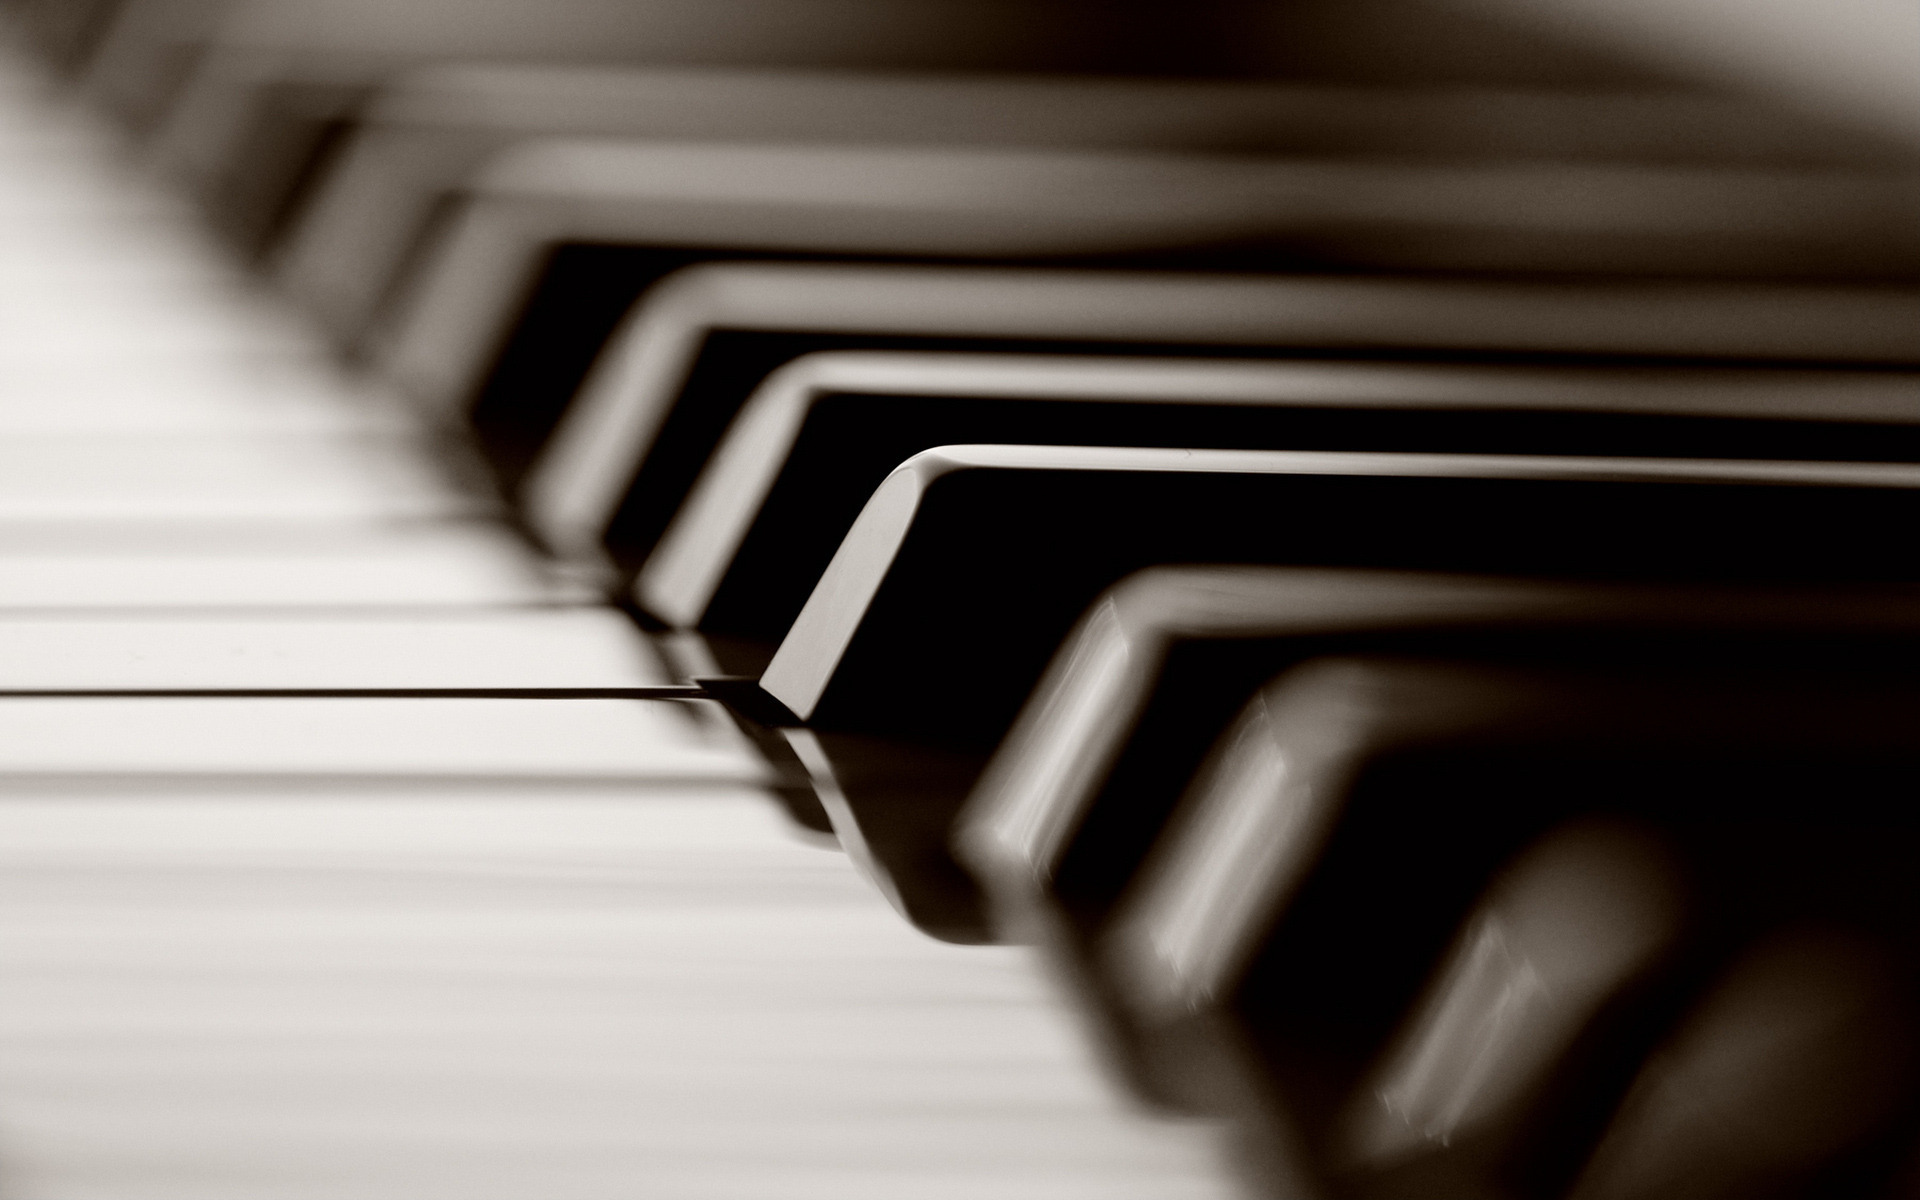 Piano Wallpaper HD 2454